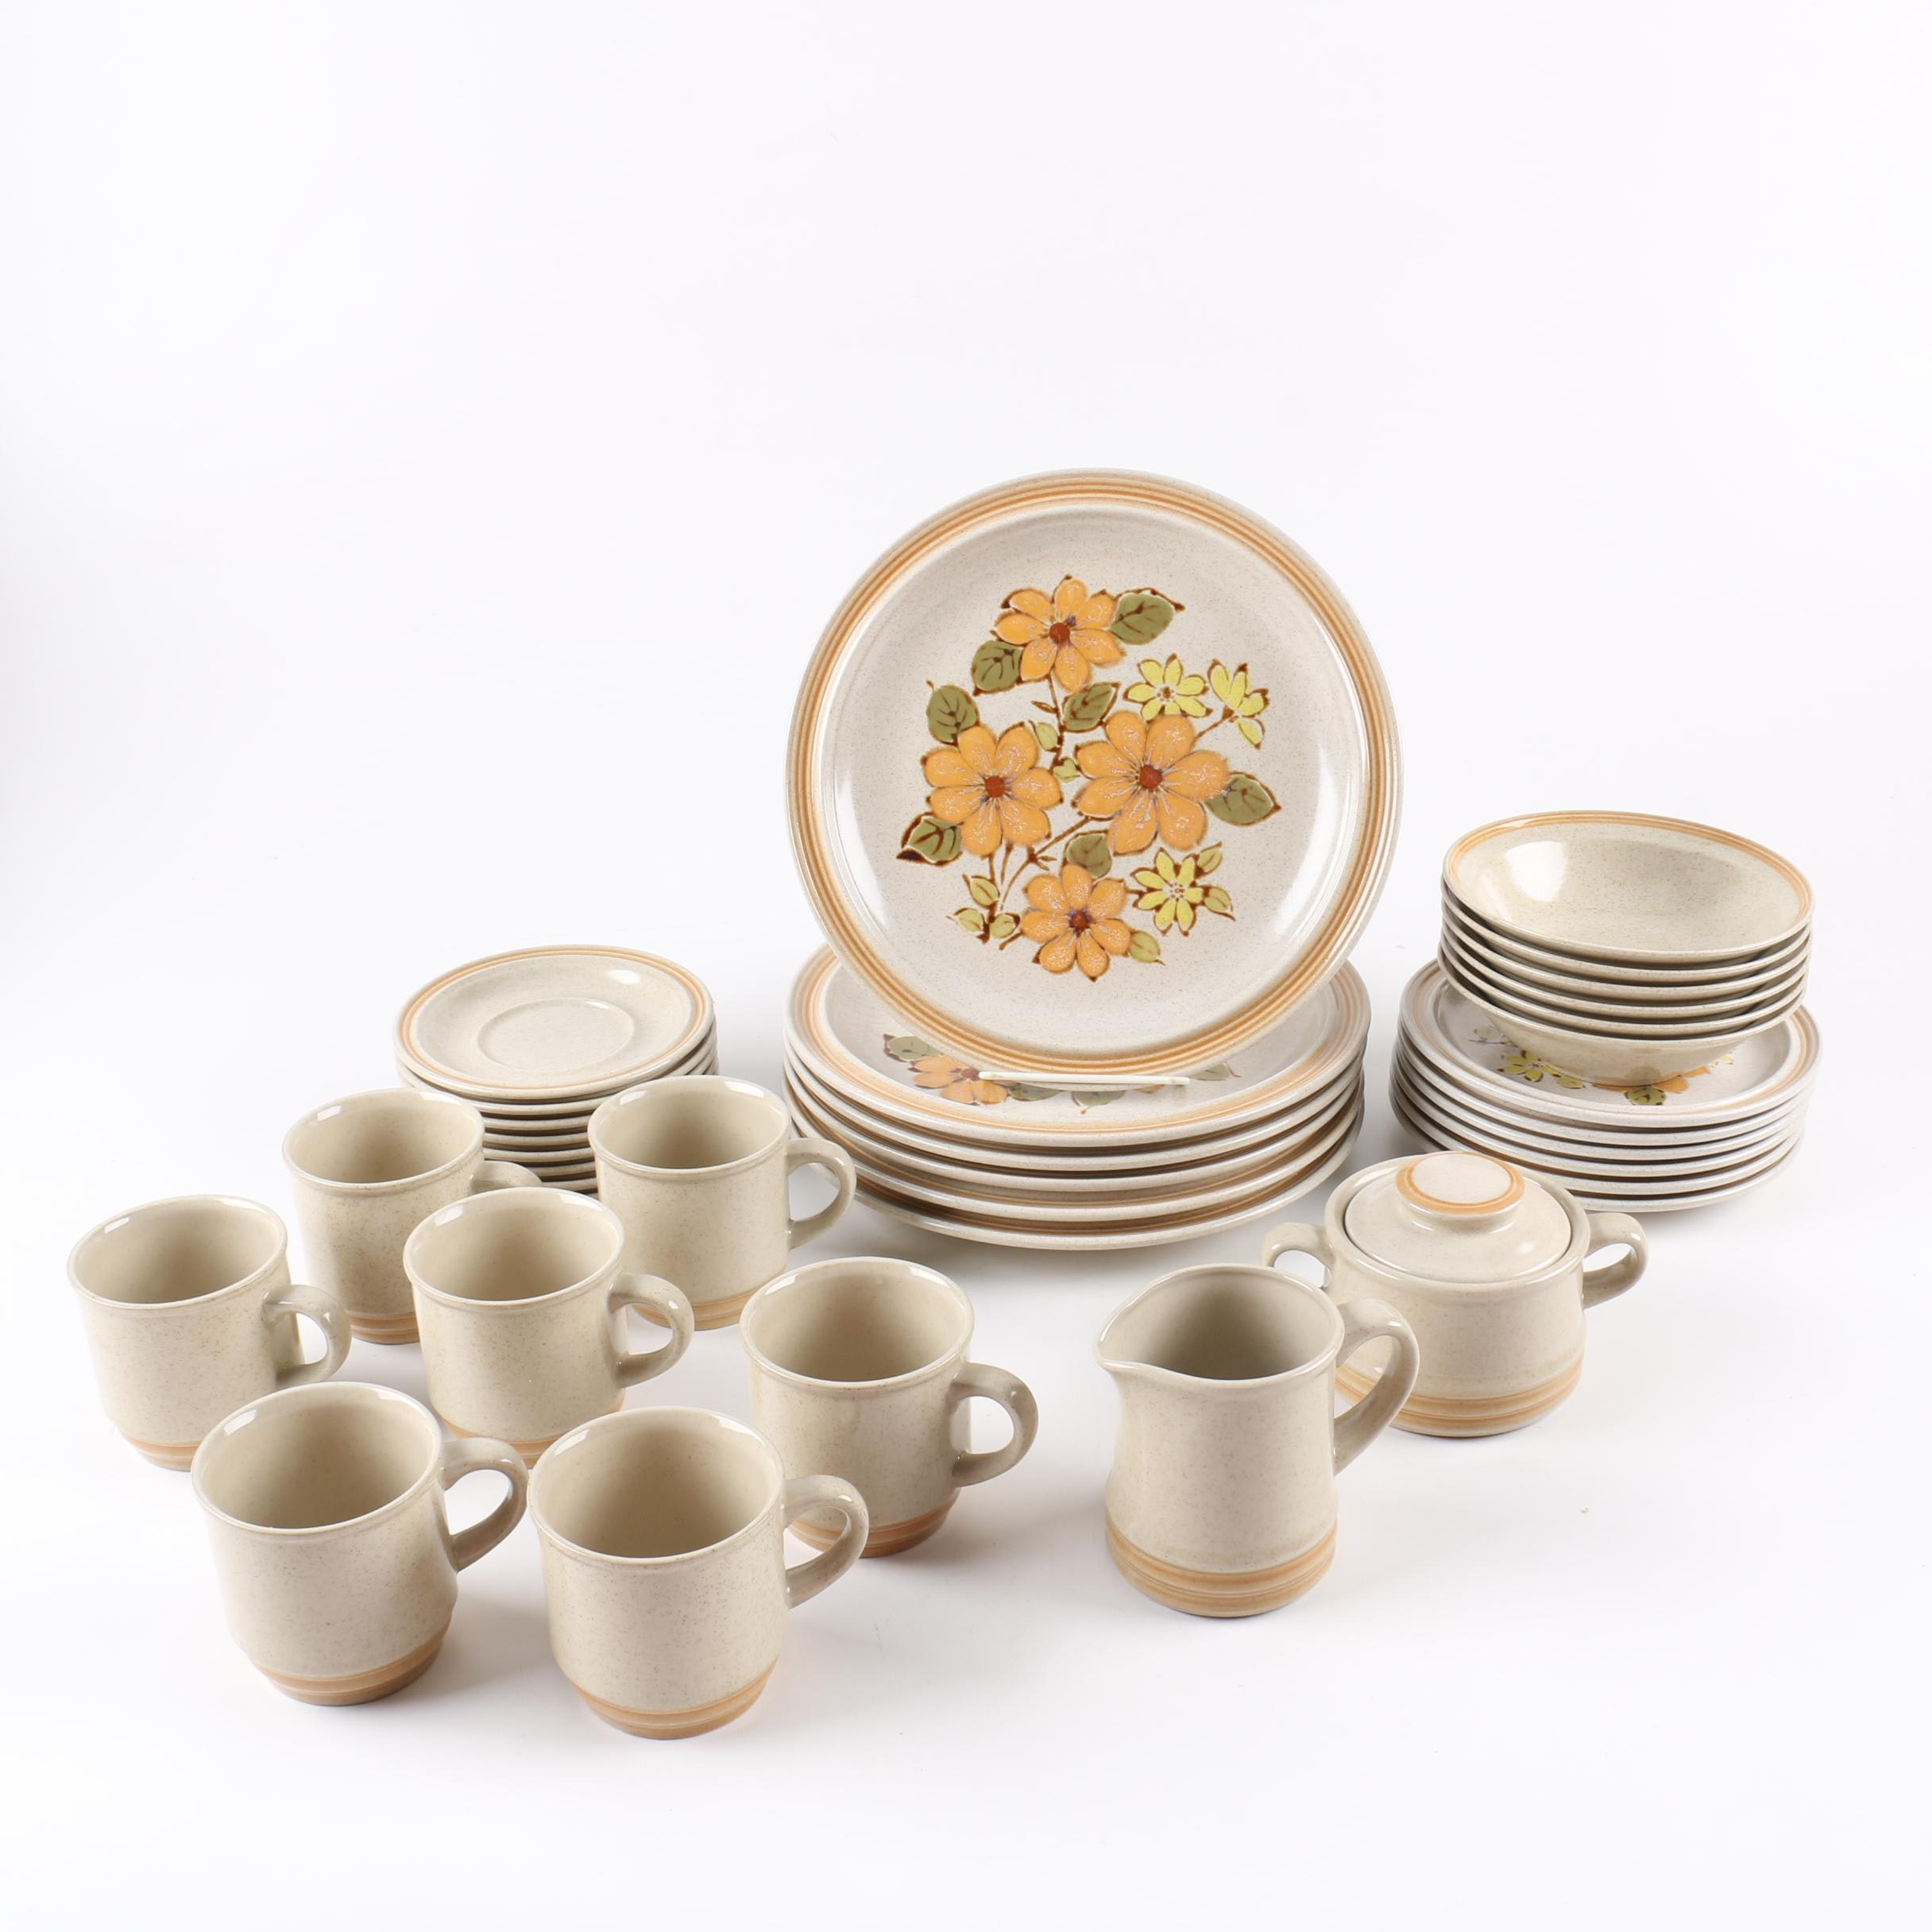 "Kilncraft ""Peko"" Stoneware by International China"